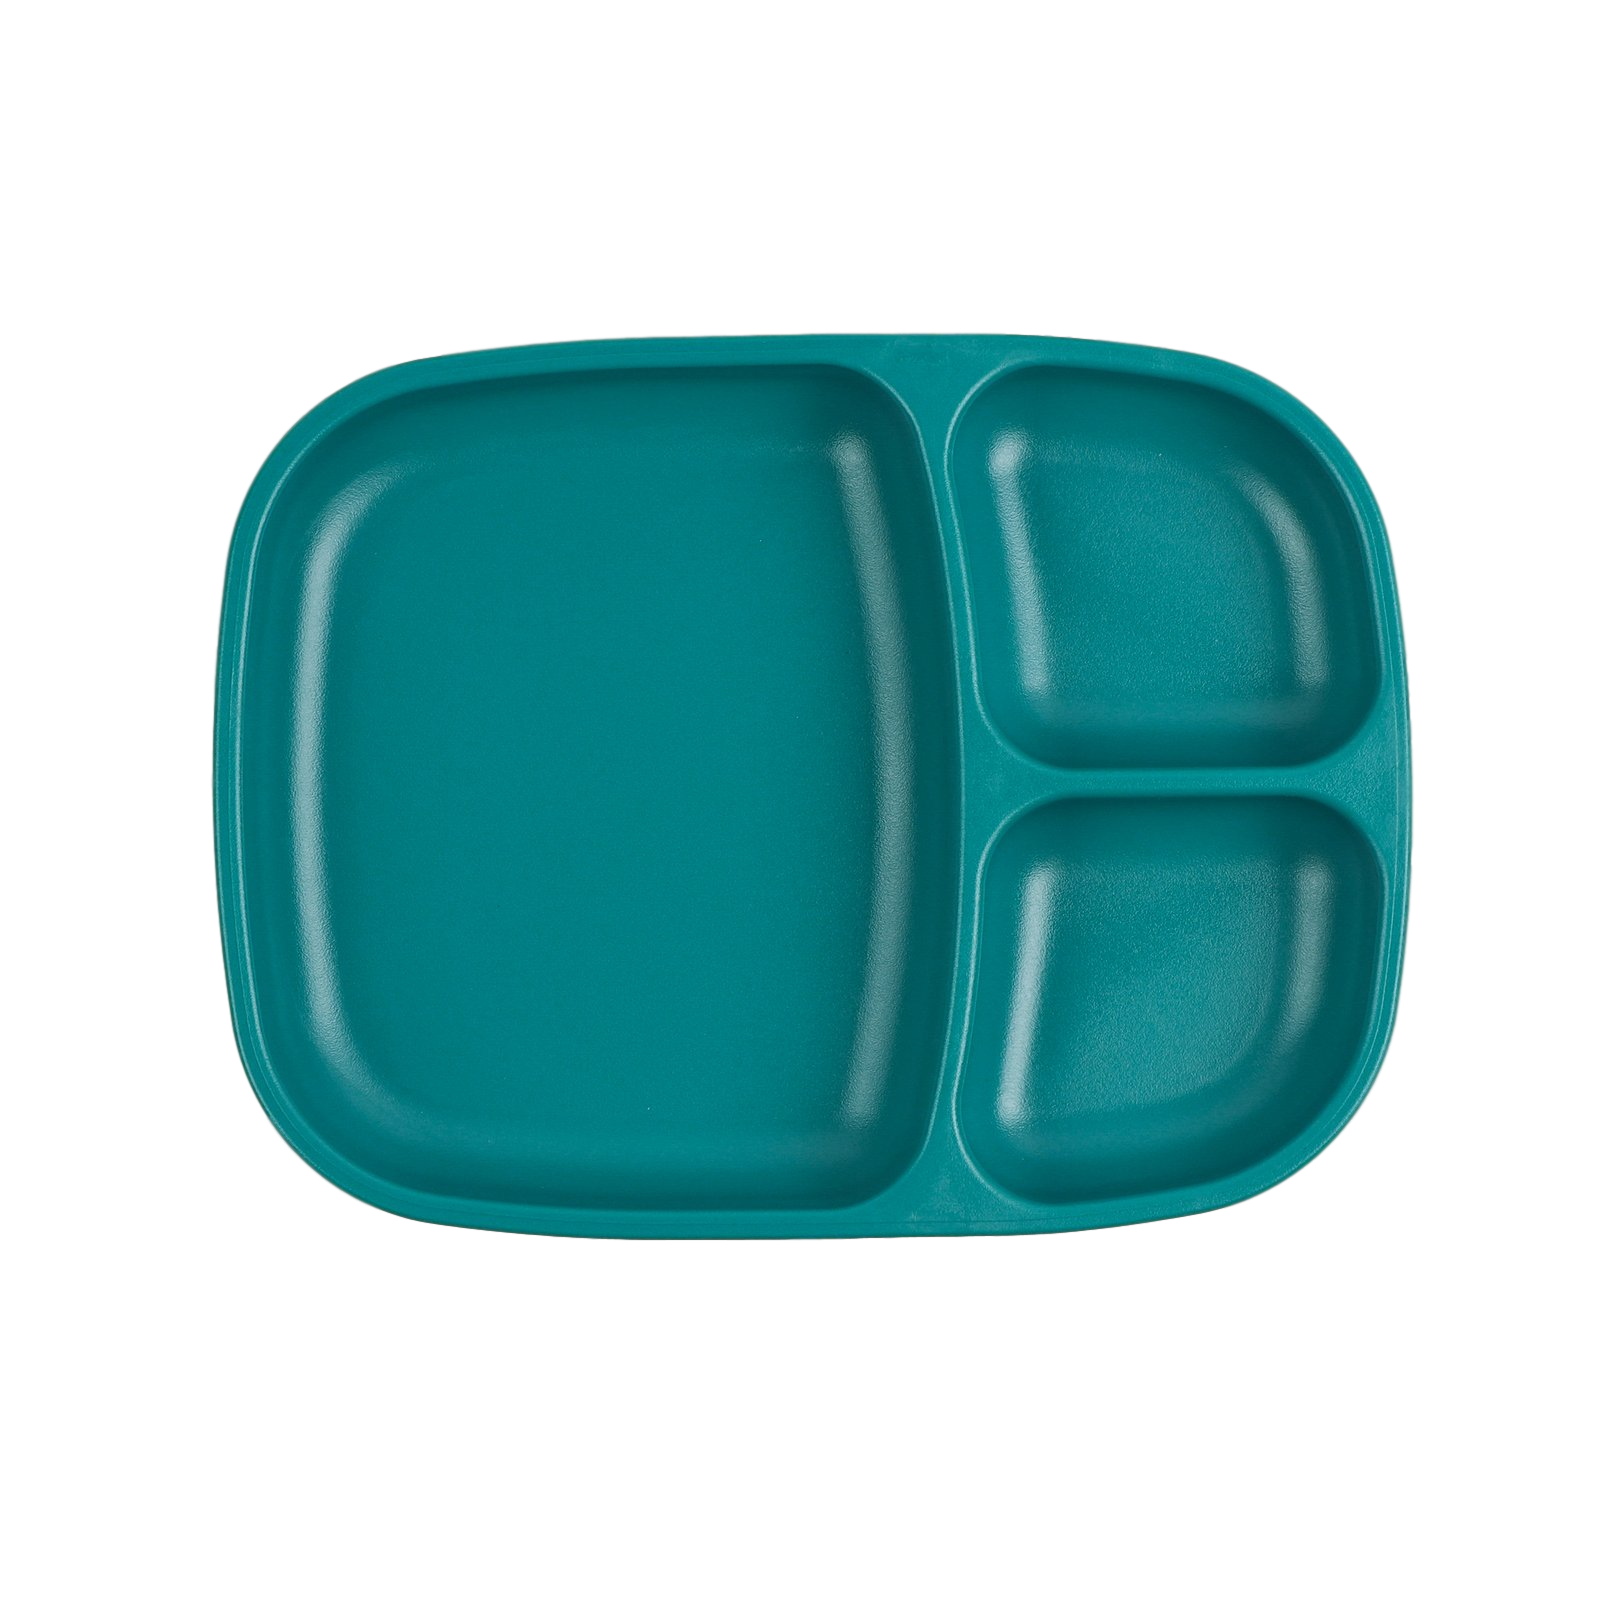 Replay Large Divided Plate Replay Dinnerware Teal at Little Earth Nest Eco Shop